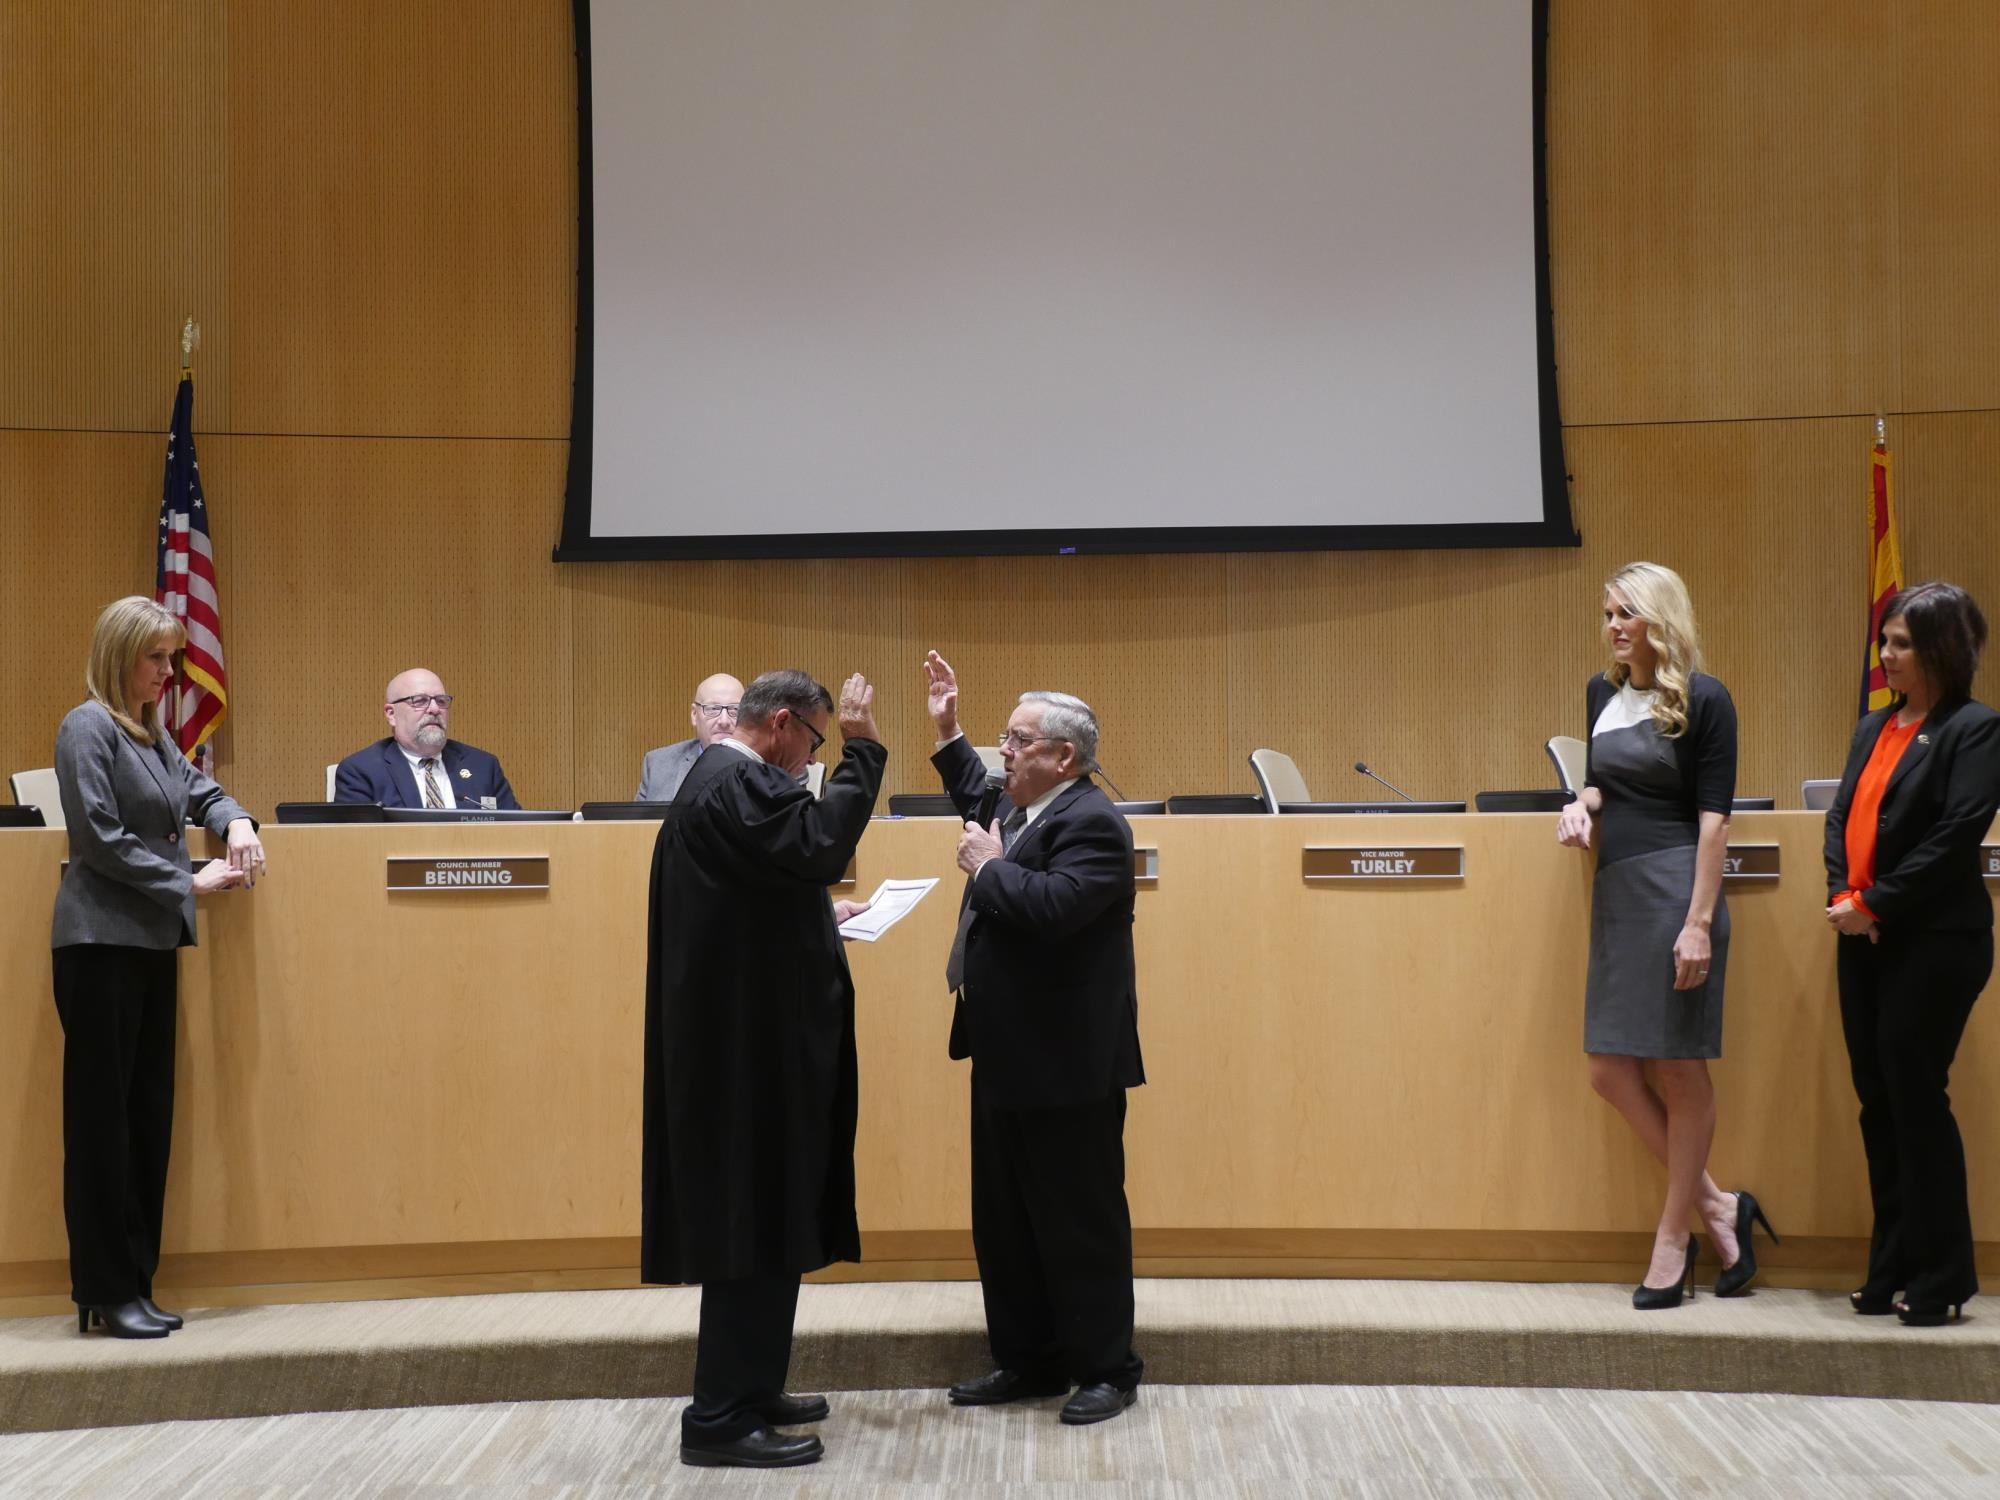 Mayor Barney being sworn into office at the January 16 Town Council Meeting